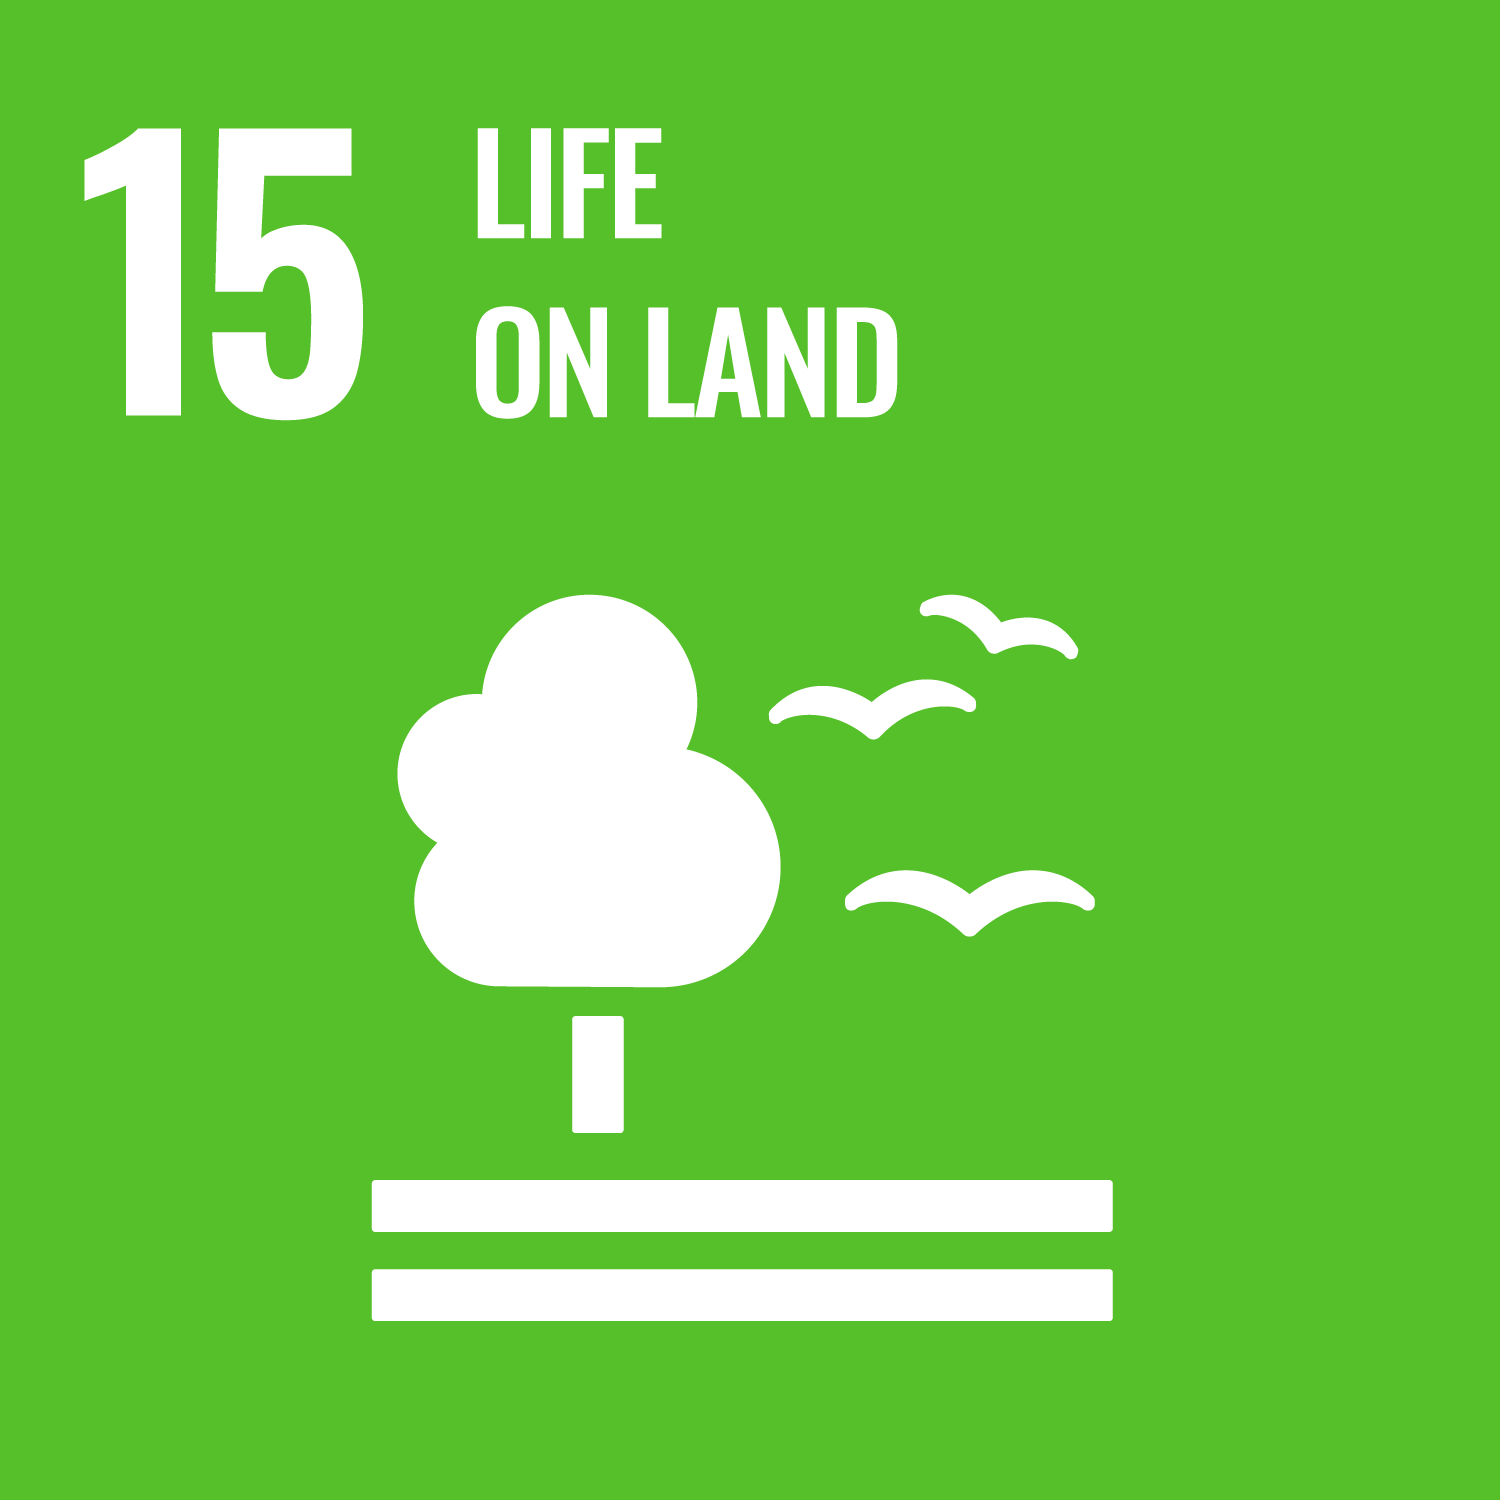 UN Sustainable goal - Life on Land